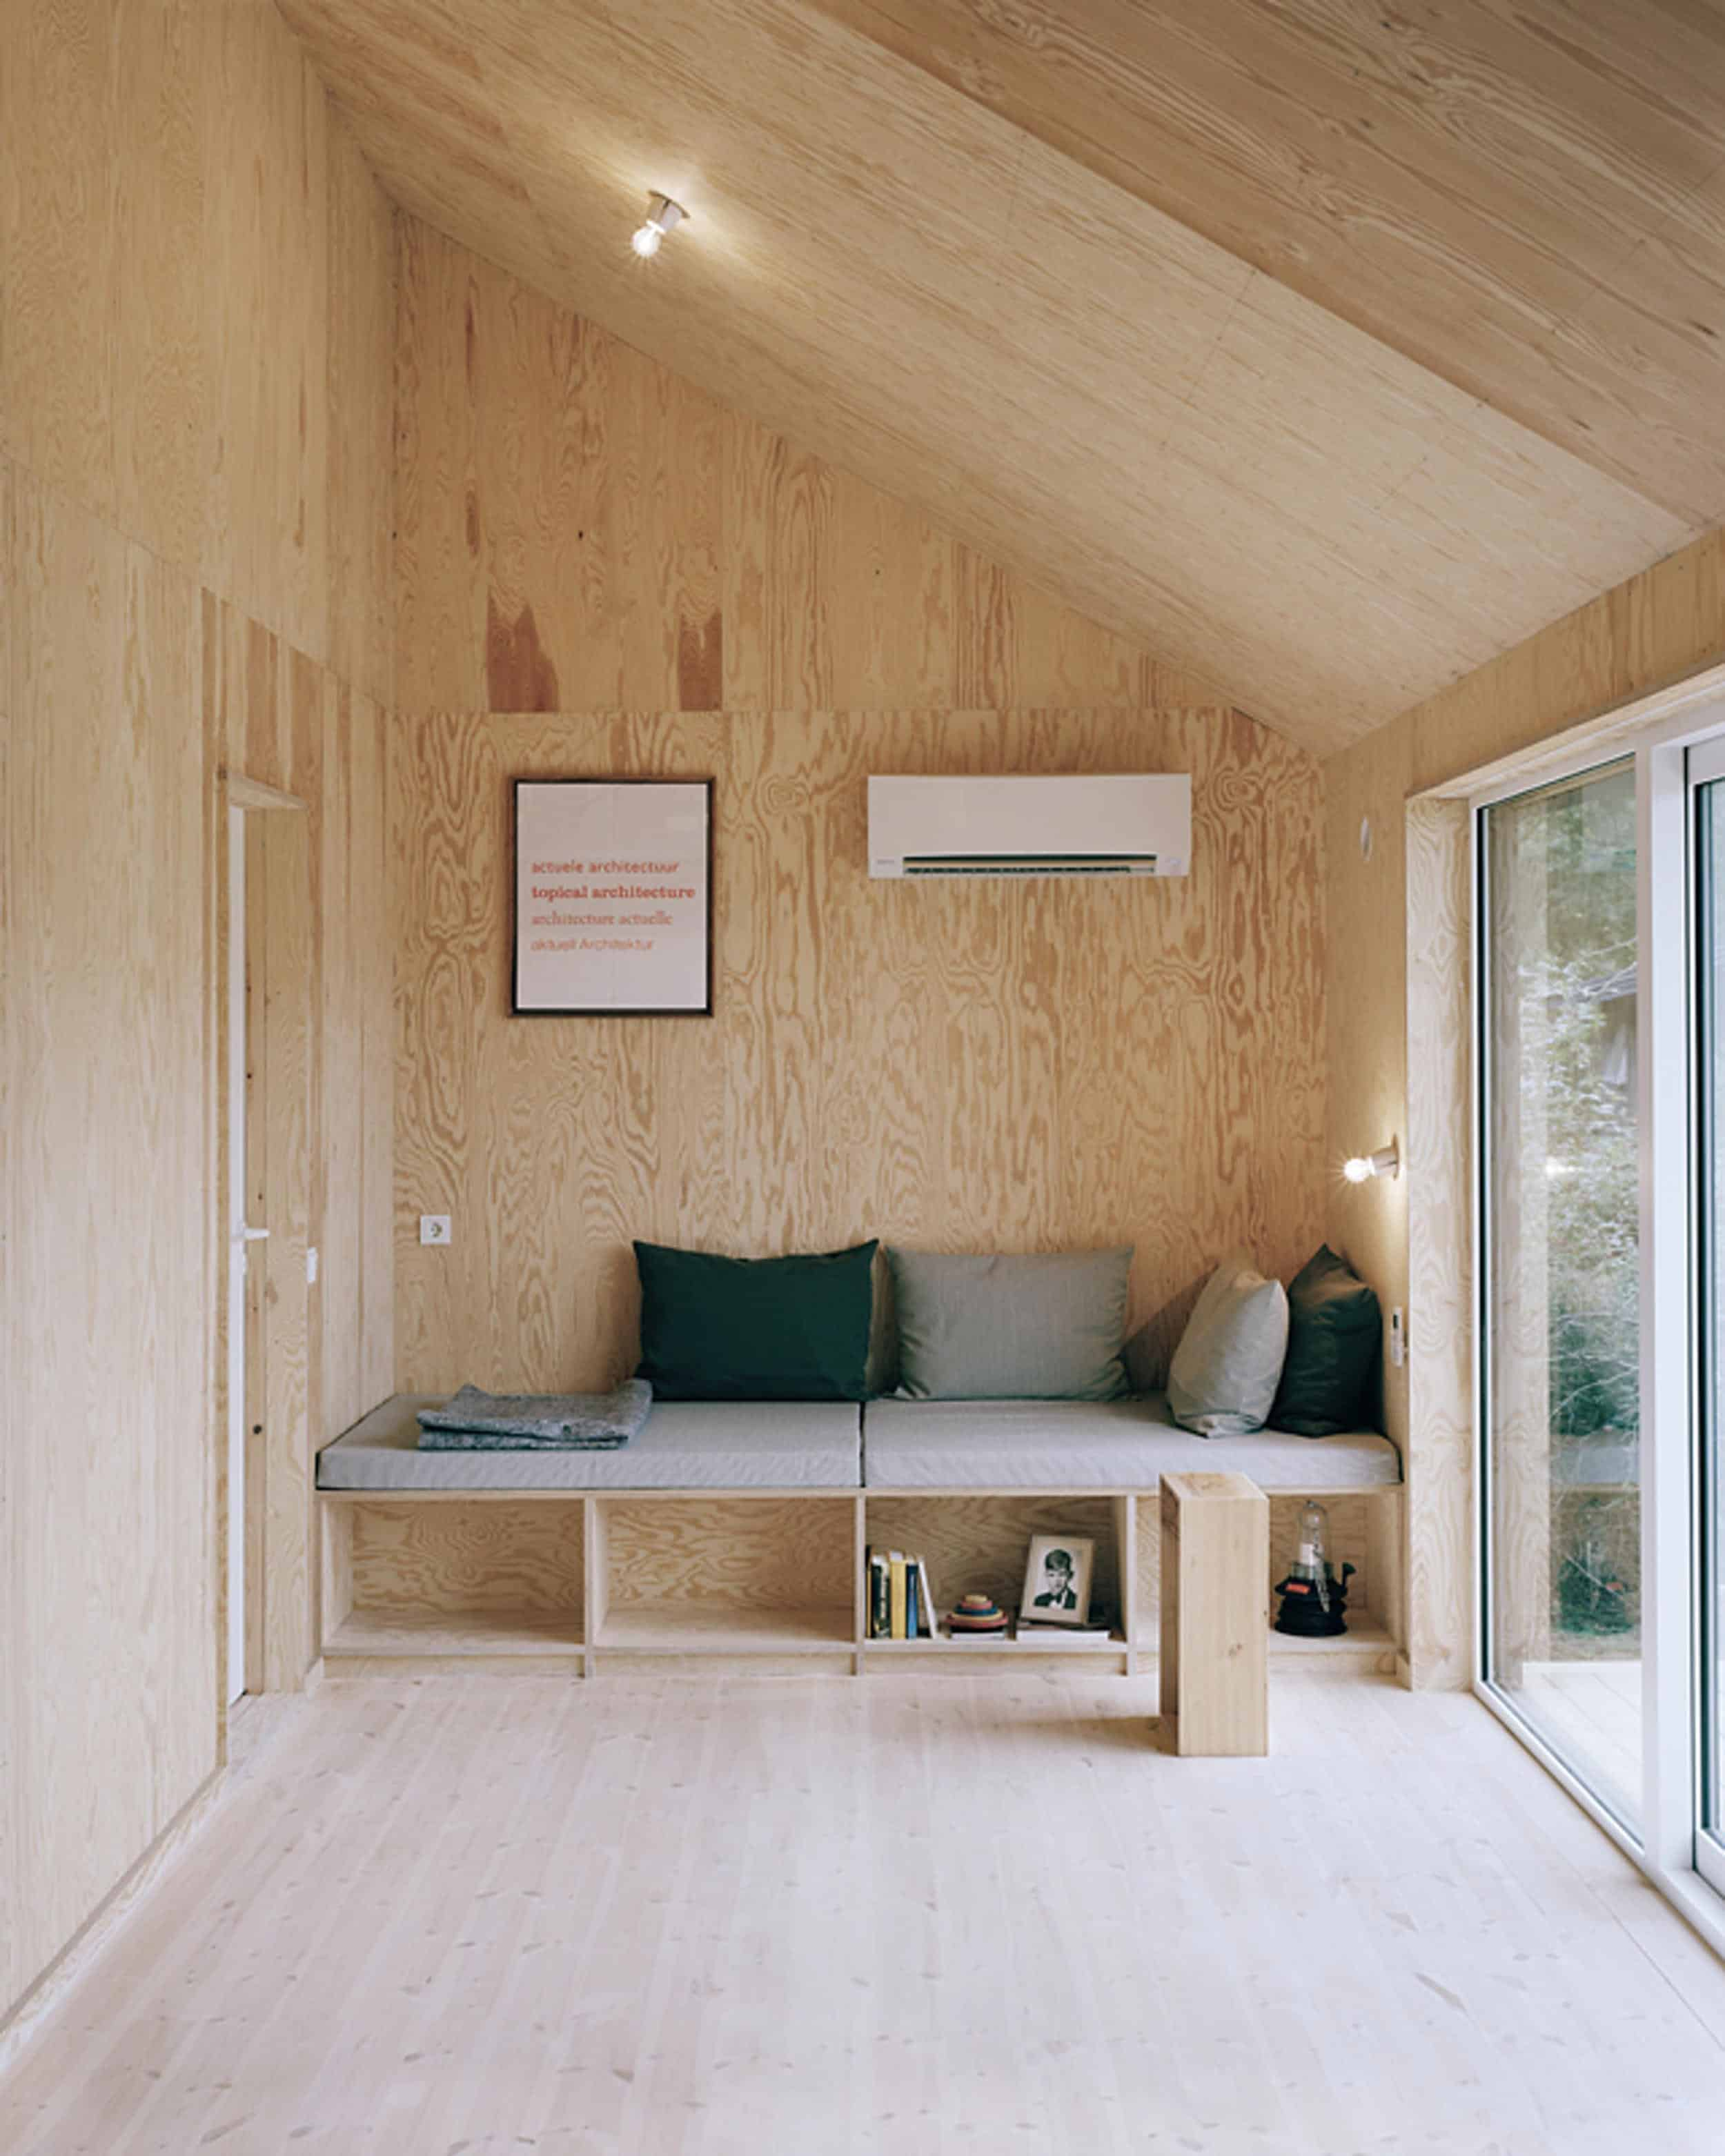 Emily Henderson How To Add Character To Basic Architecture Walls Celings Wood Unfinished Raw 12